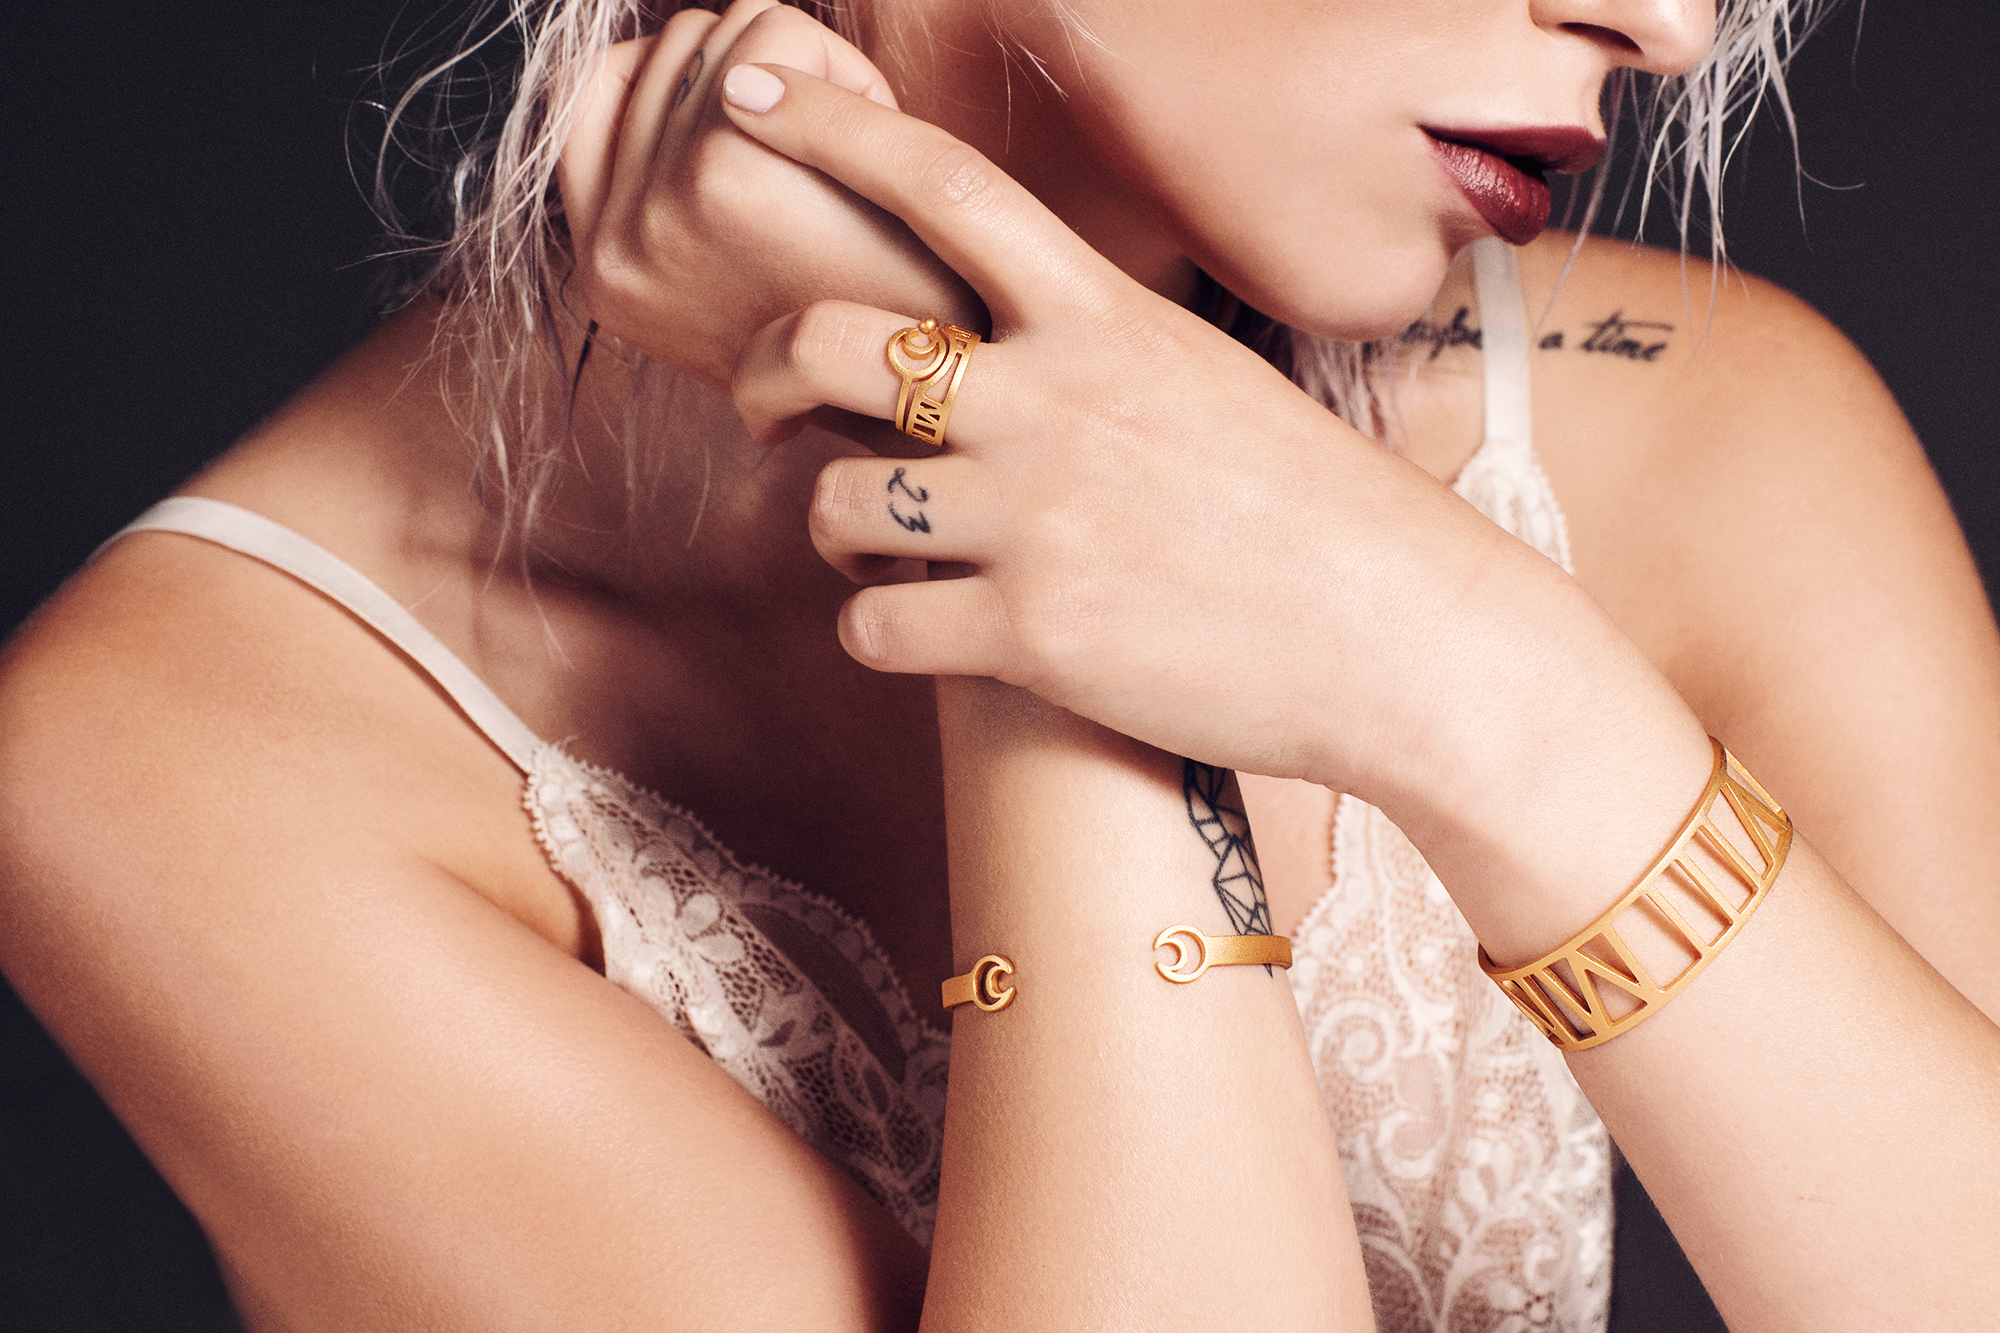 Masha Sedgwick's first jewelry collection